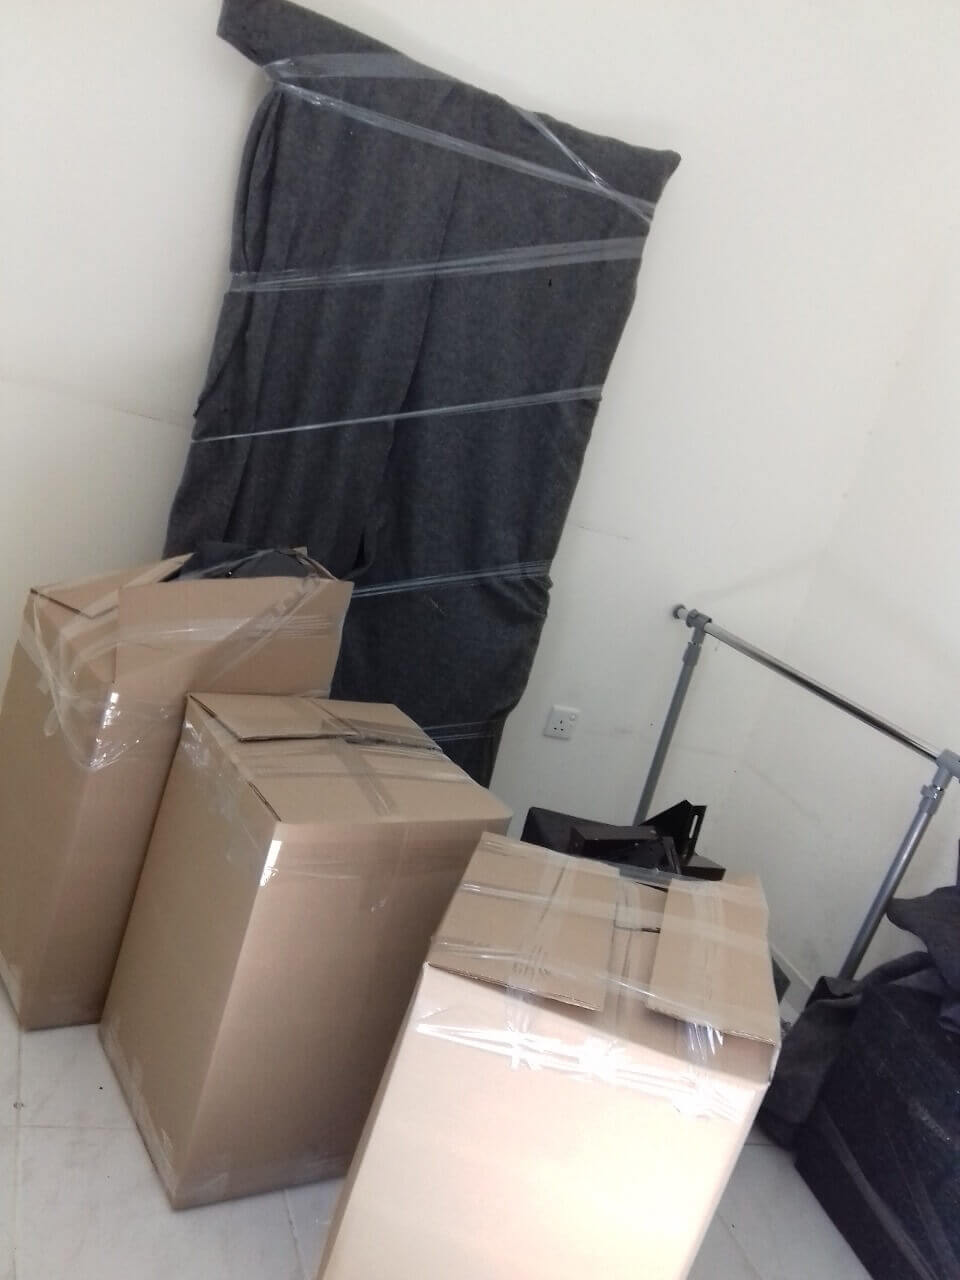 Latest packing boxes